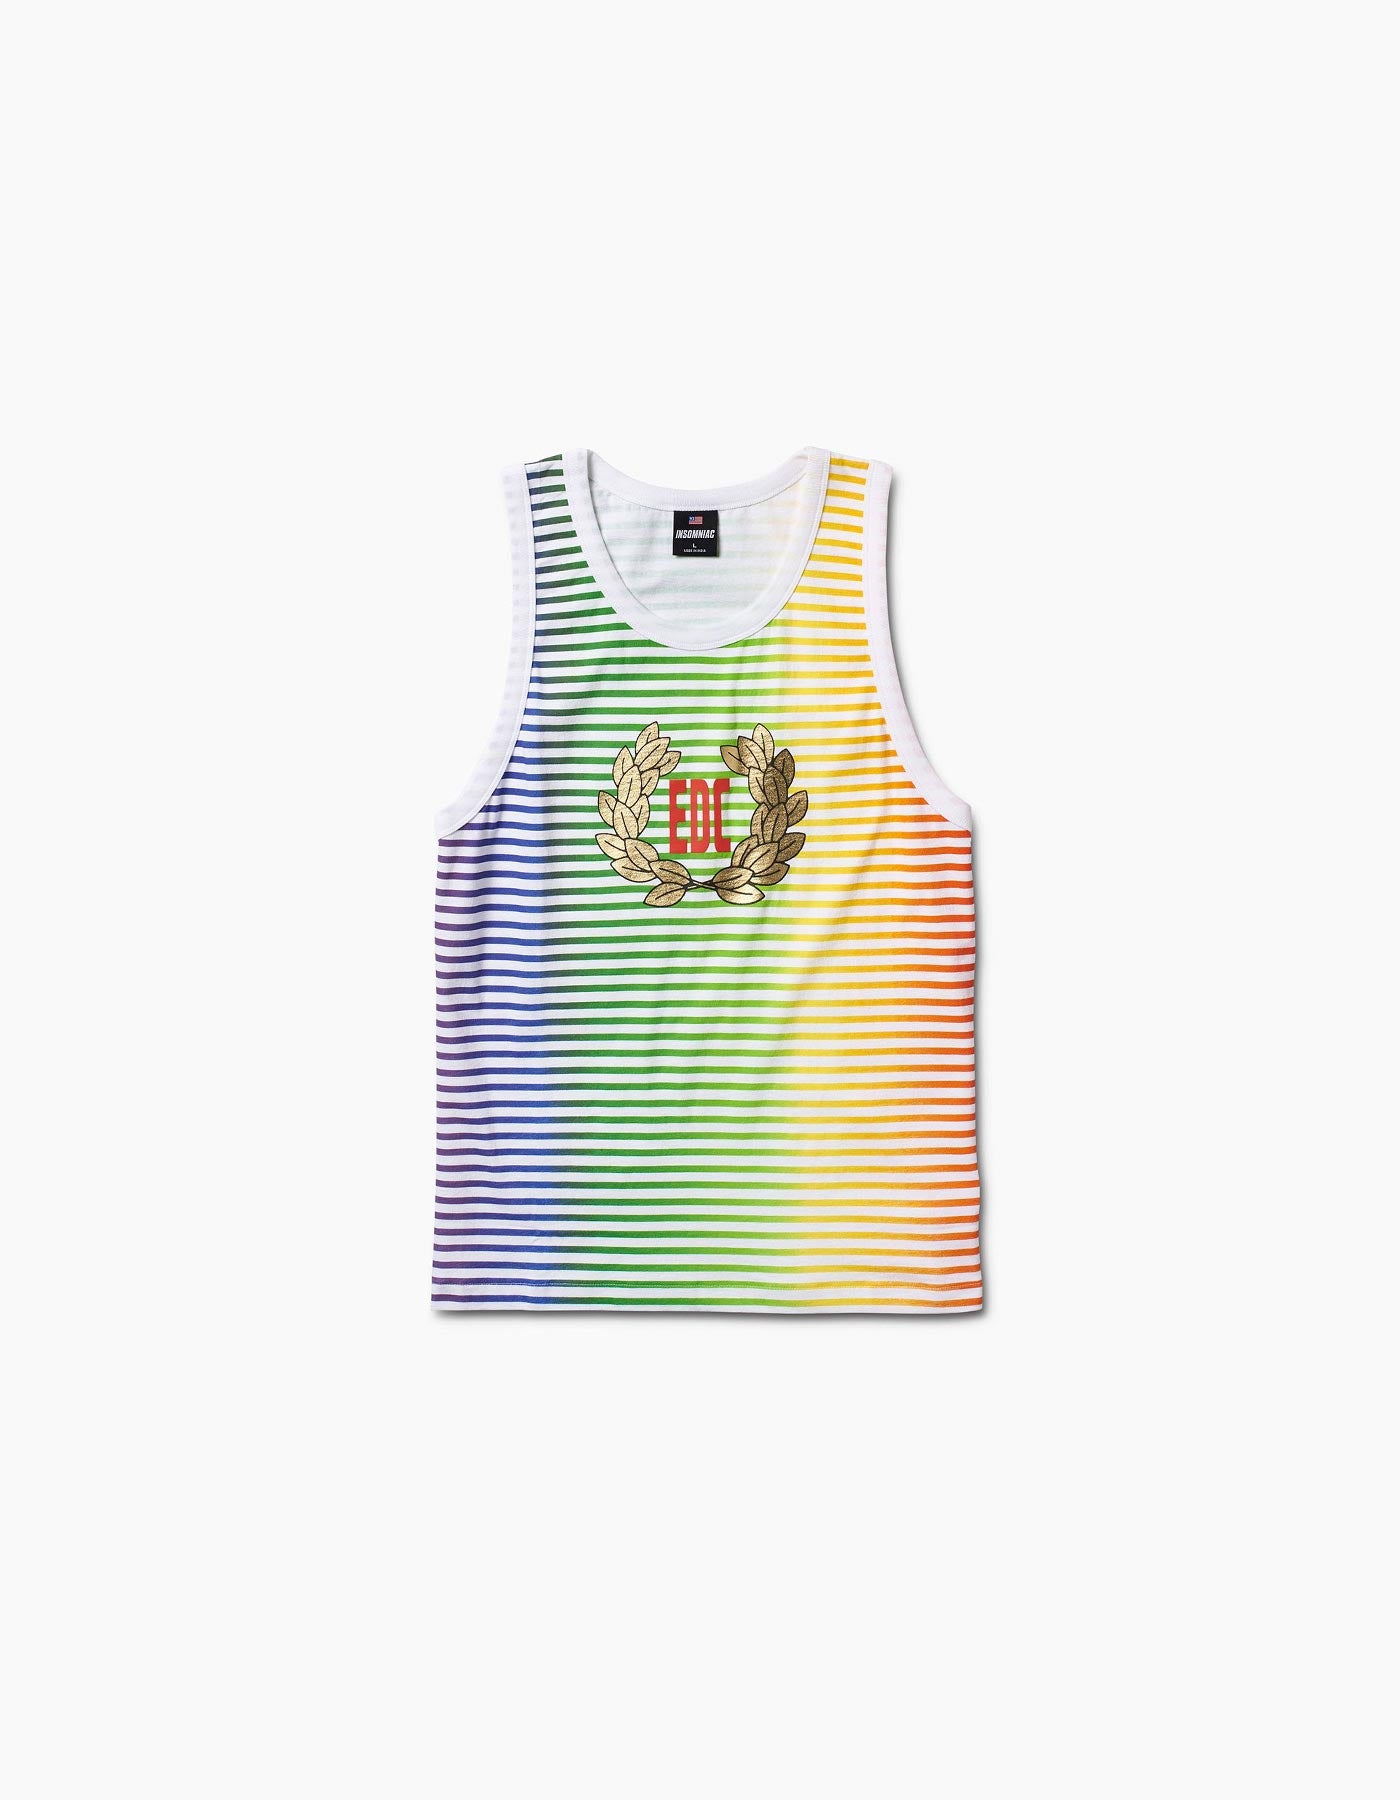 EDC Gold Wreath RainbowTank